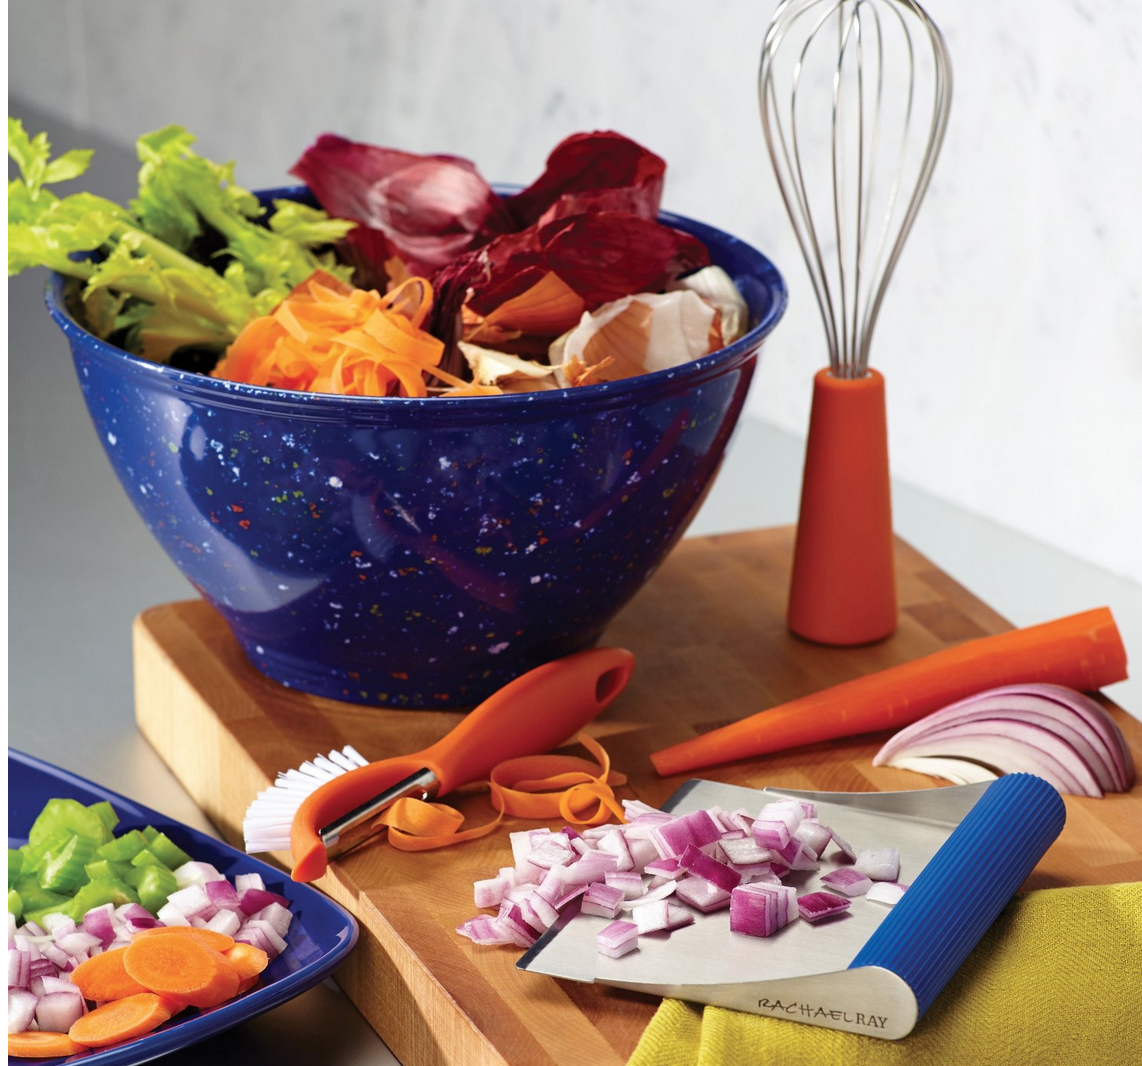 Rachael Ray Tools Garbage Bowl with Non-Slip Rubber Base As Low As $11.76 (Reg. $40!)